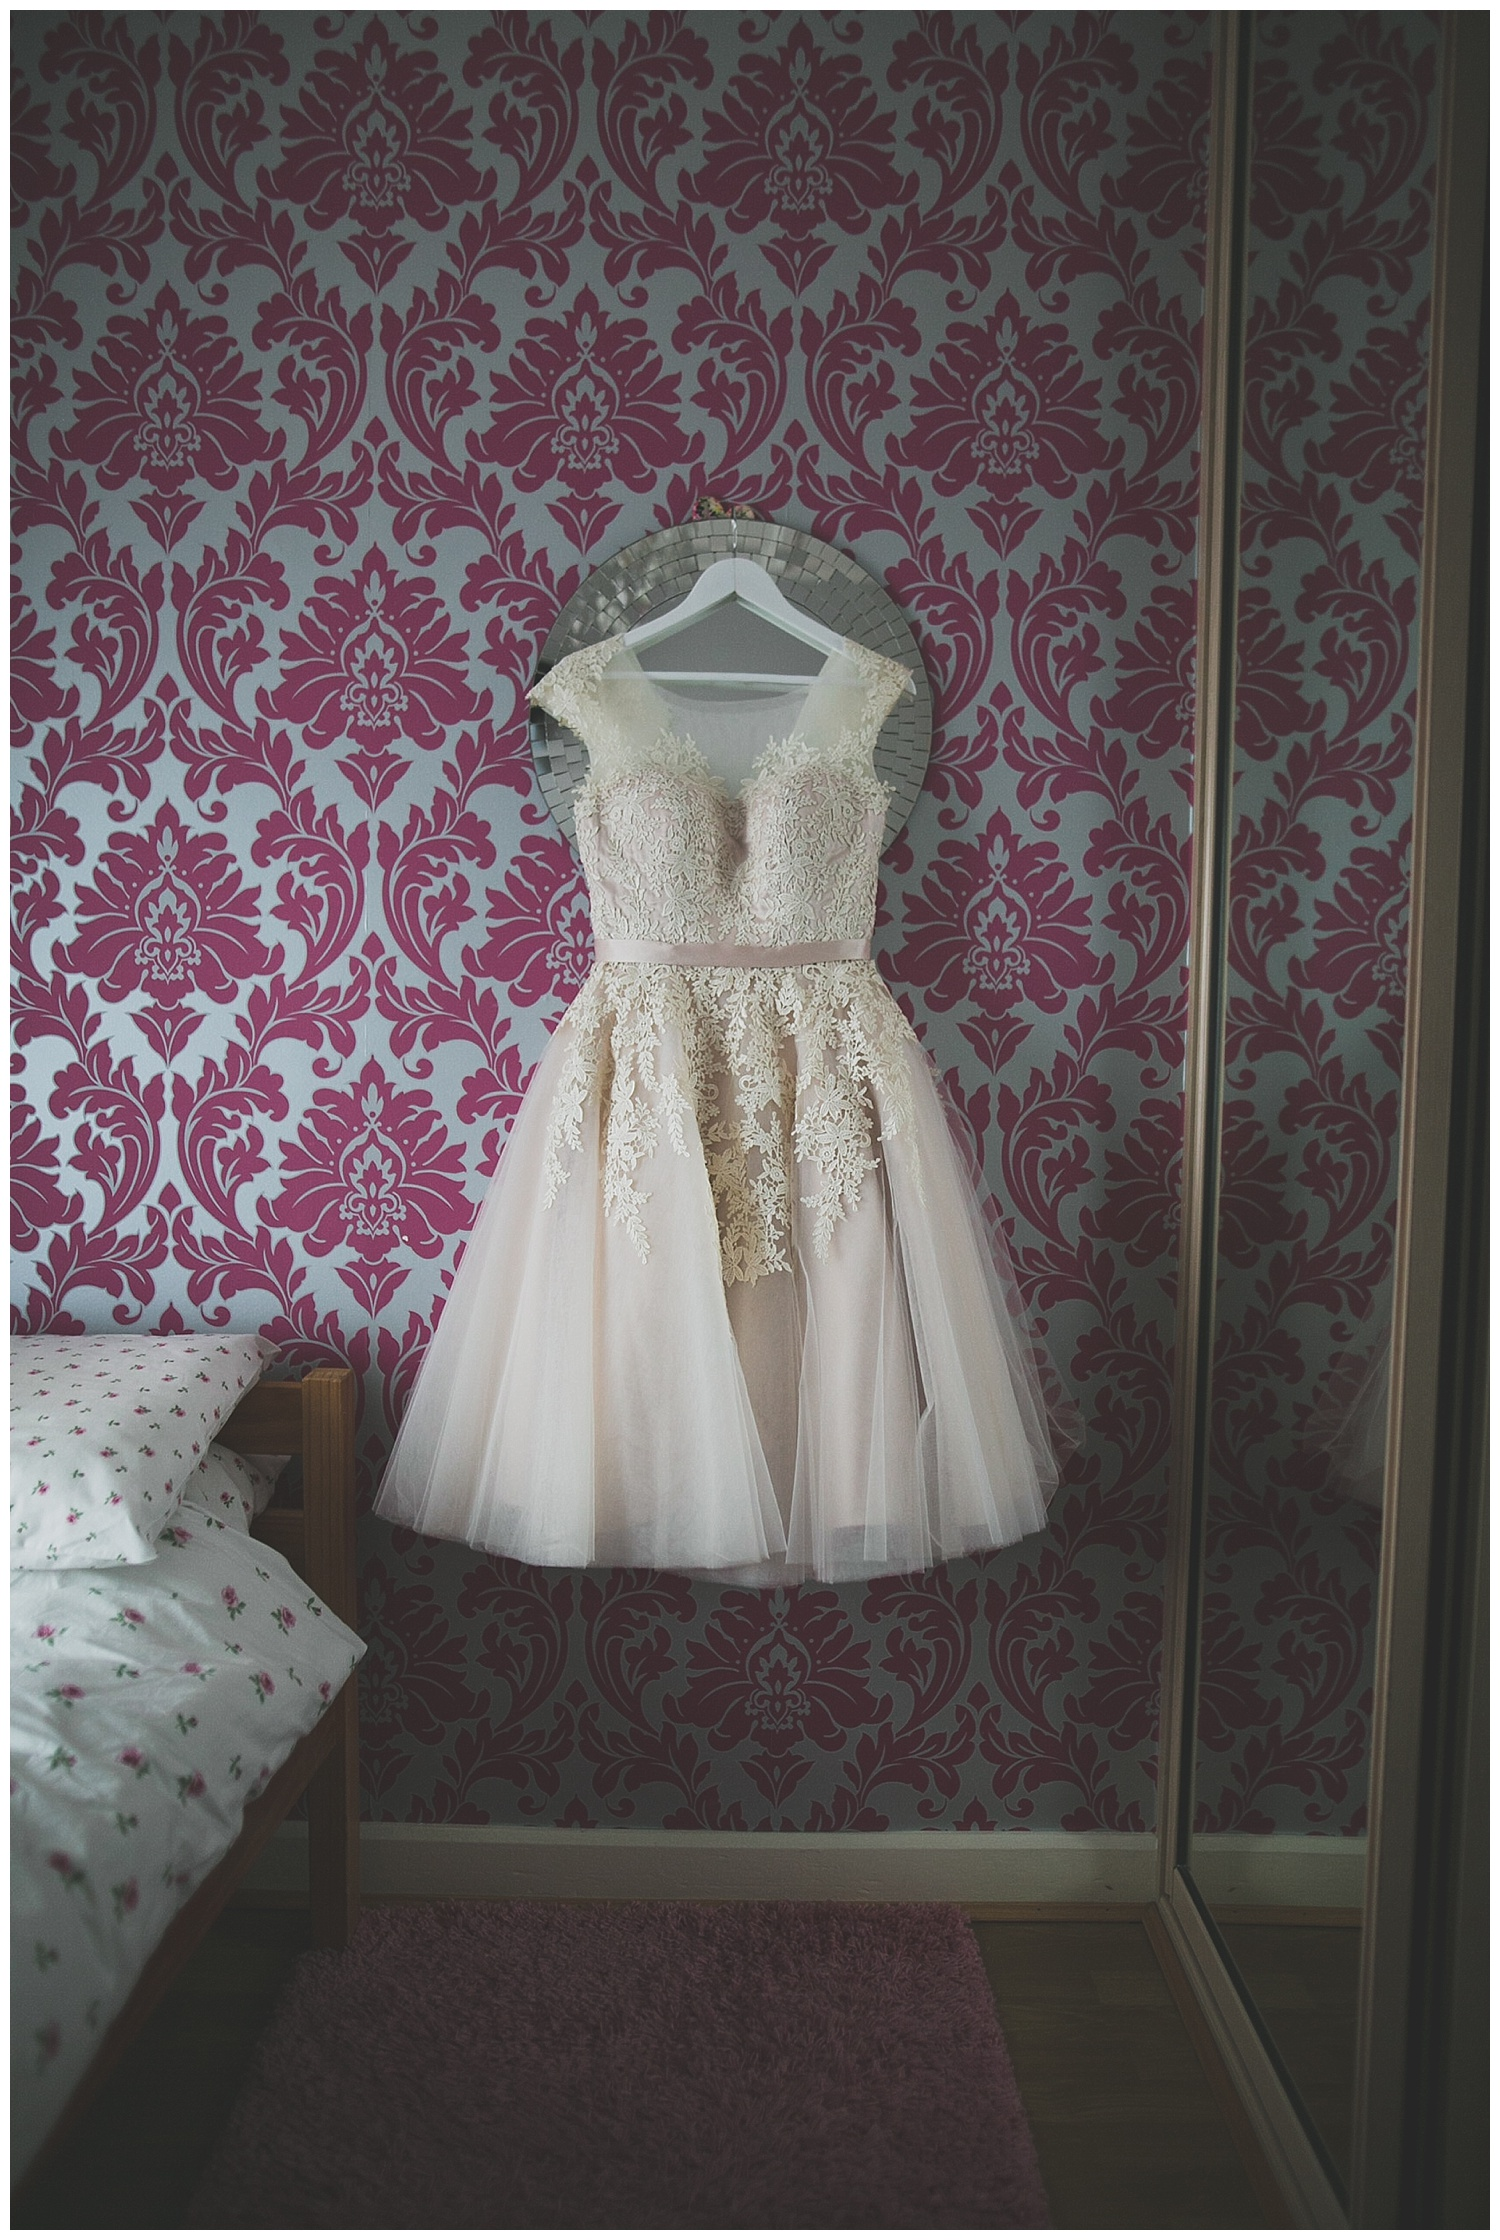 Off white tulle and lace wedding dress in a knee length skater style